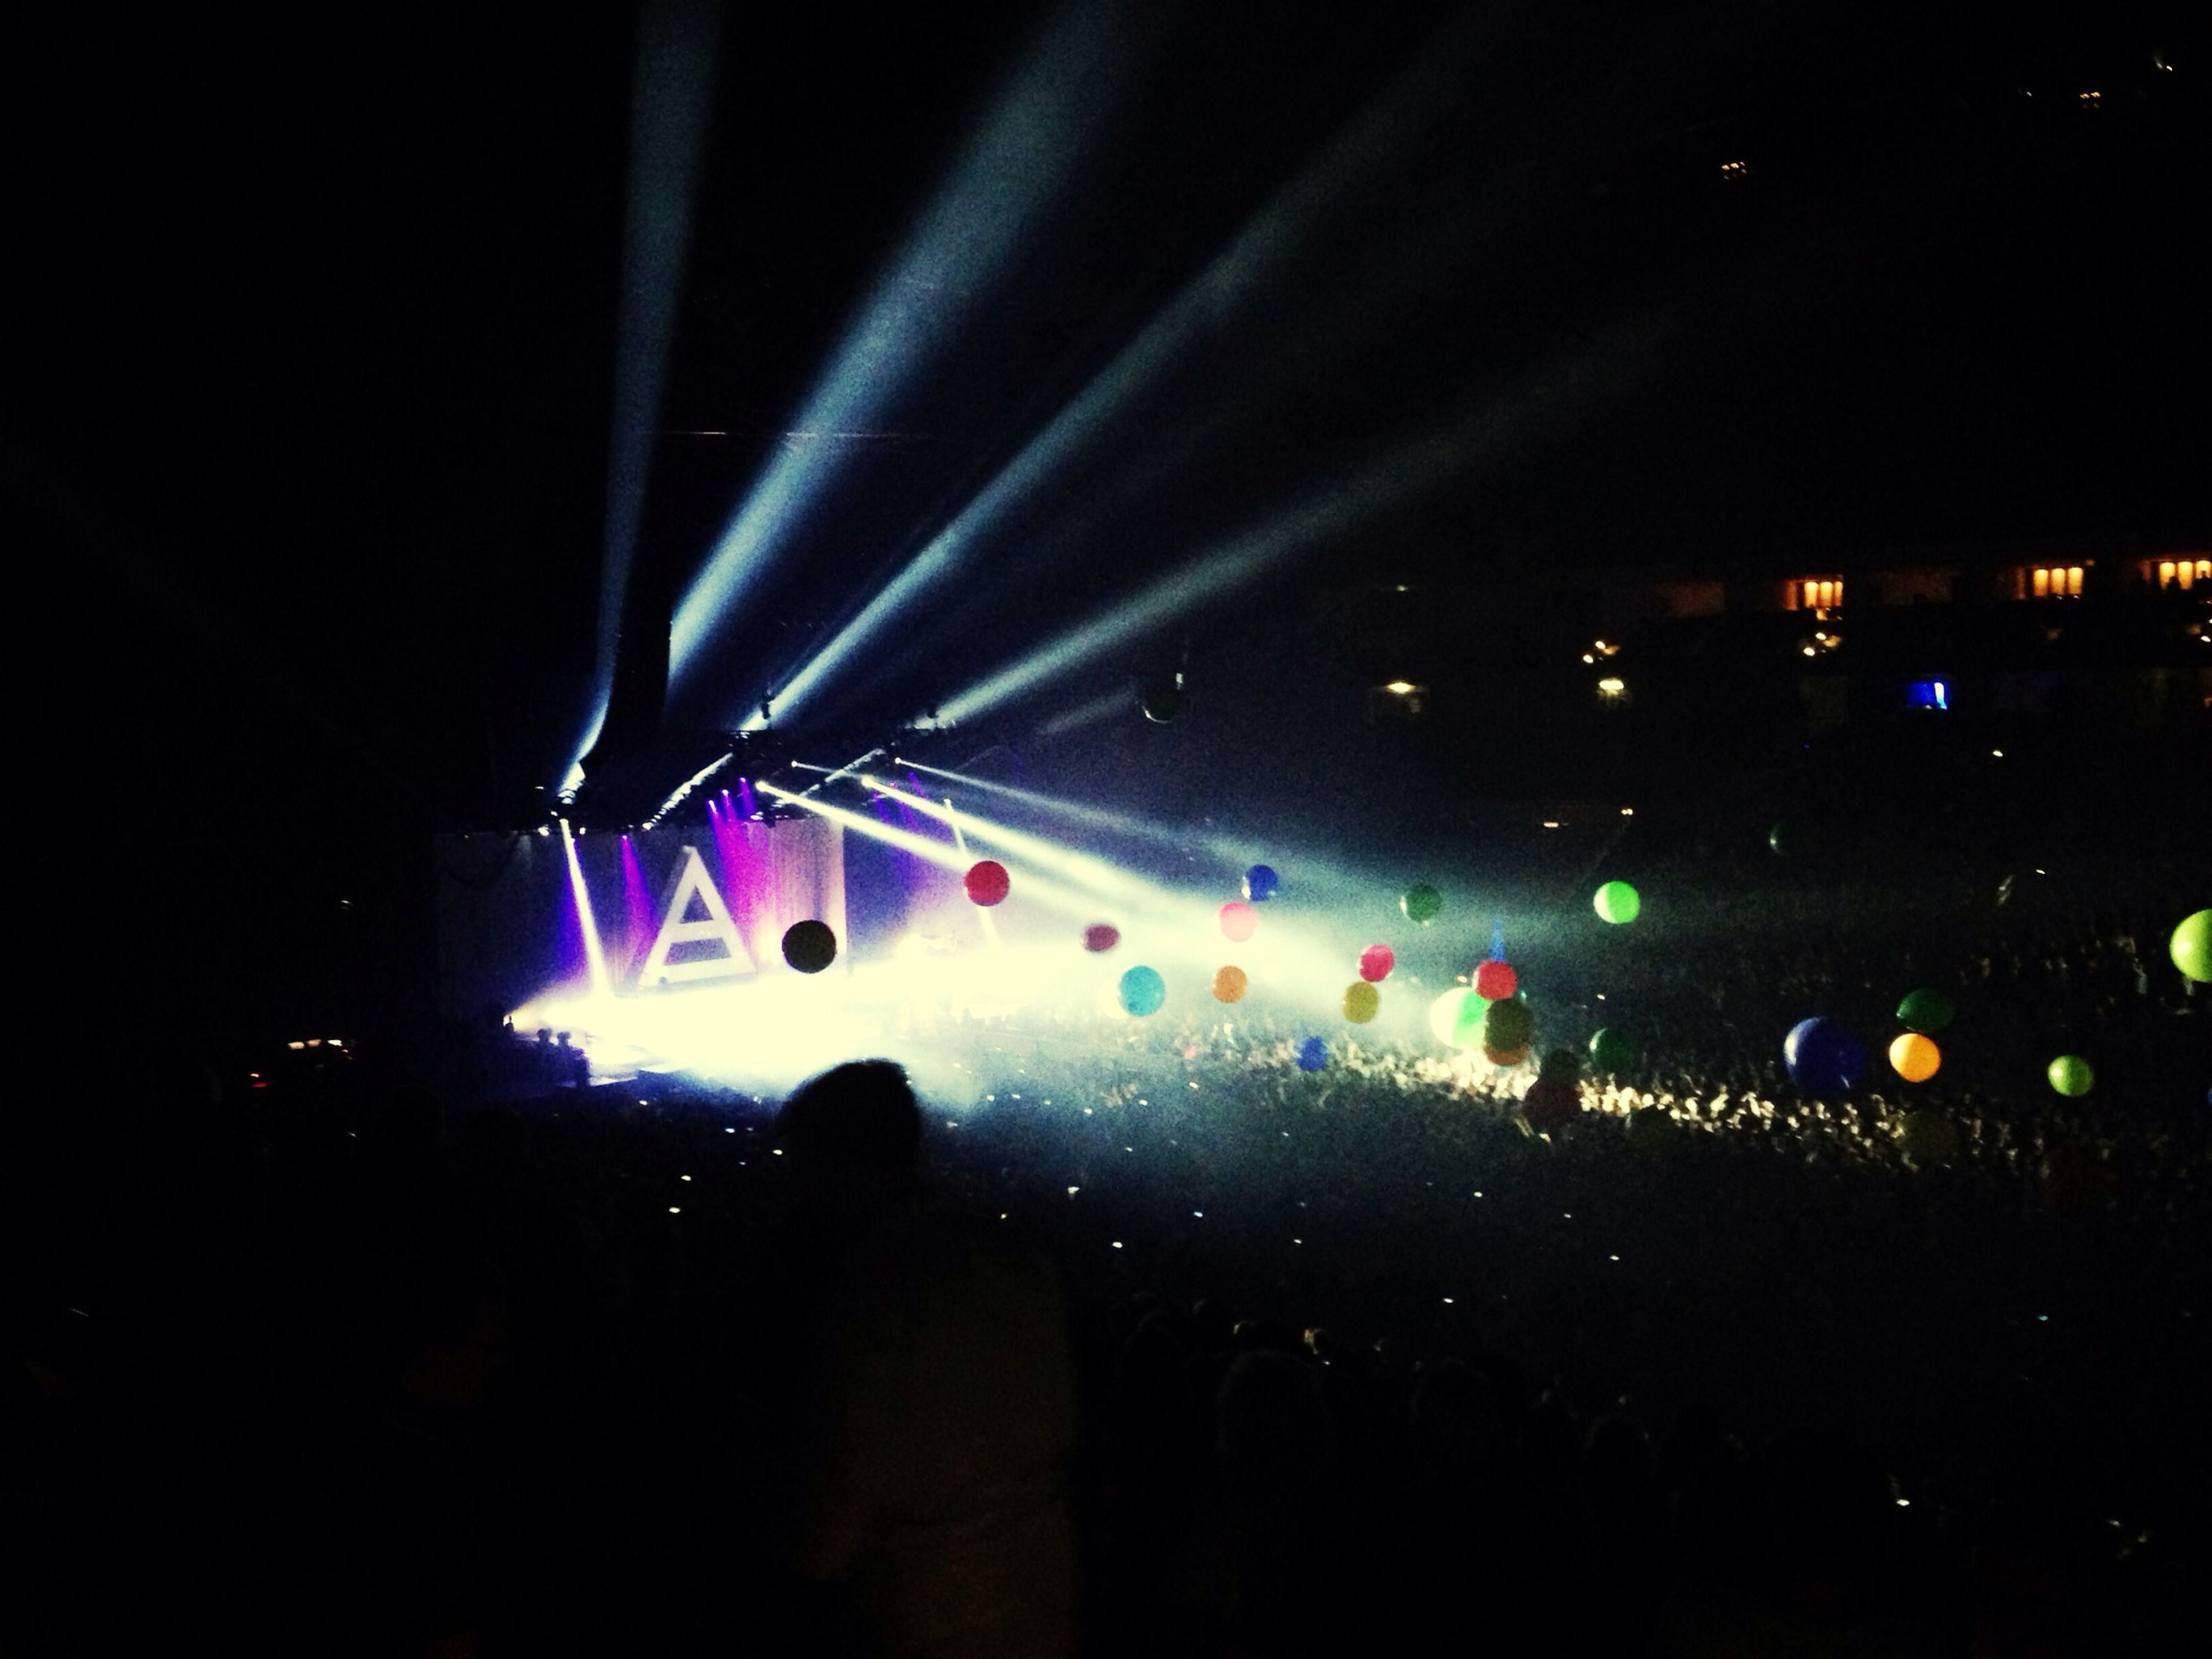 illuminated, night, large group of people, nightlife, crowd, arts culture and entertainment, music, event, person, performance, stage - performance space, light - natural phenomenon, lighting equipment, lifestyles, leisure activity, men, celebration, stage light, concert